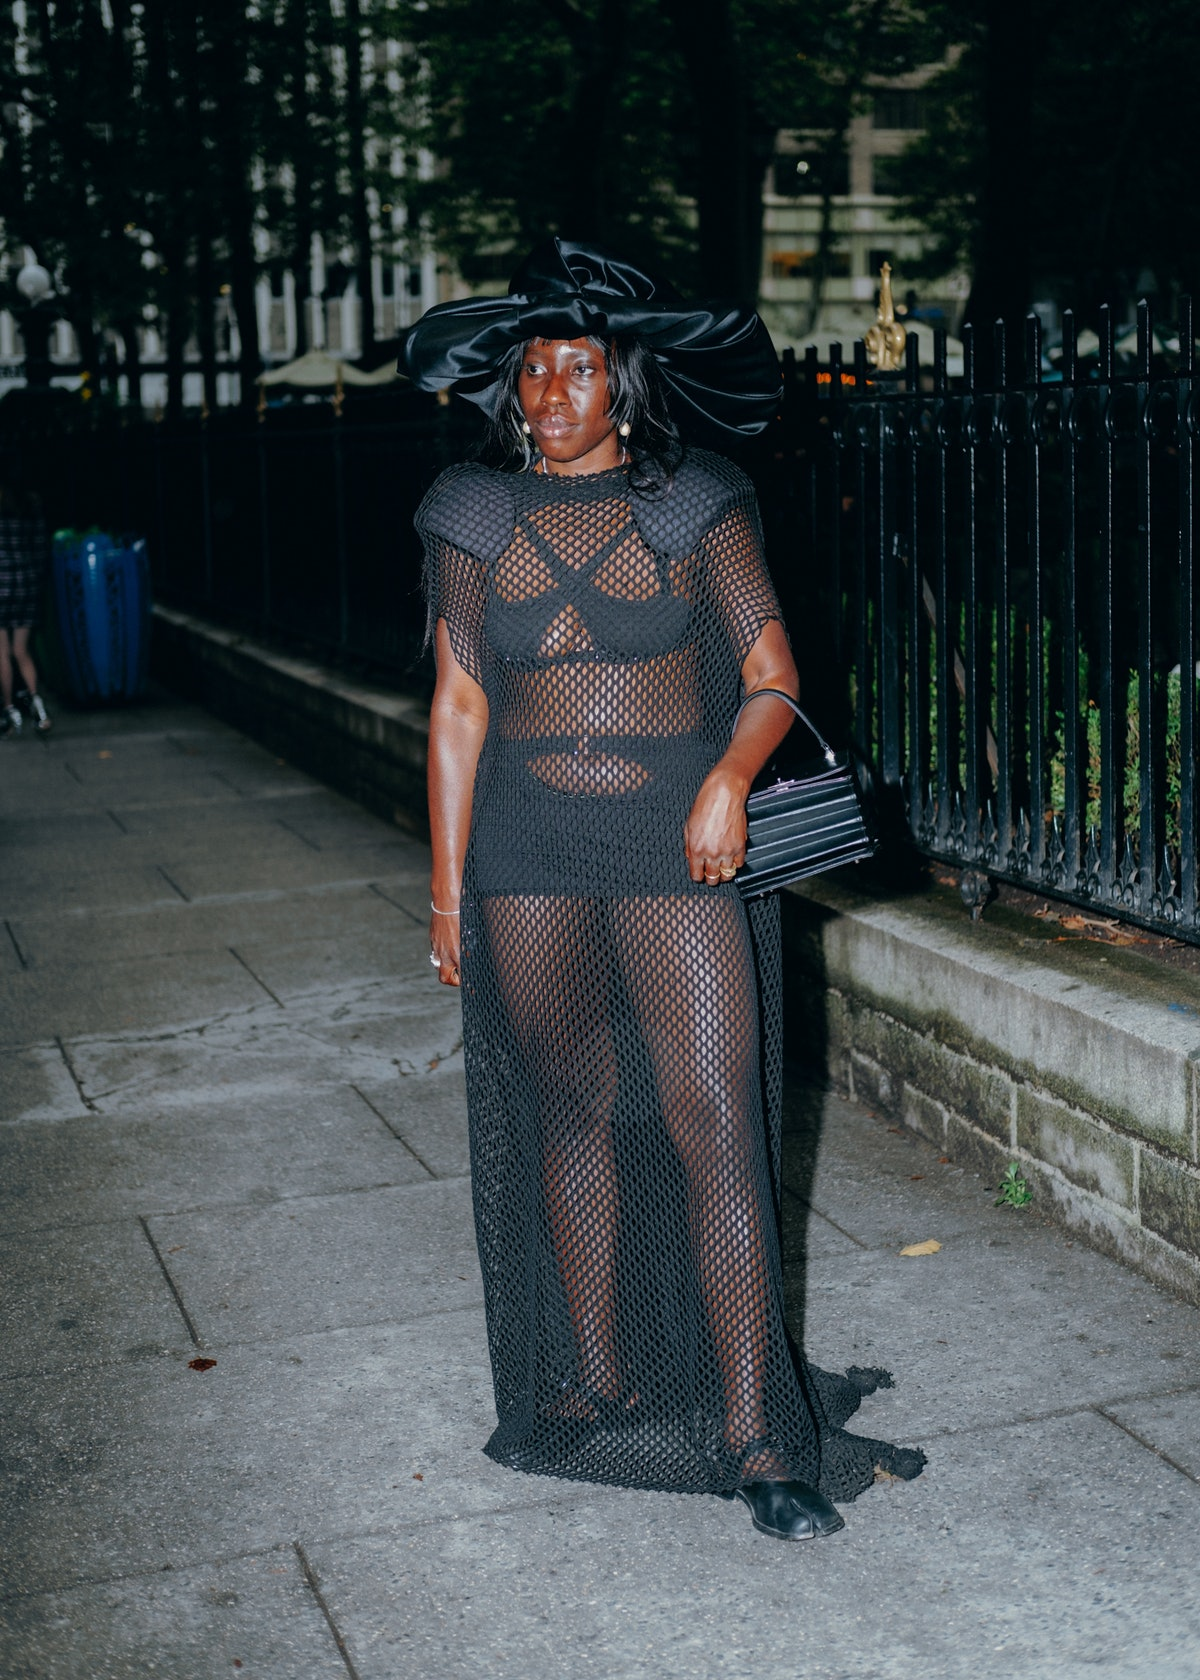 The woman is wearing a mesh dress with a large hat.